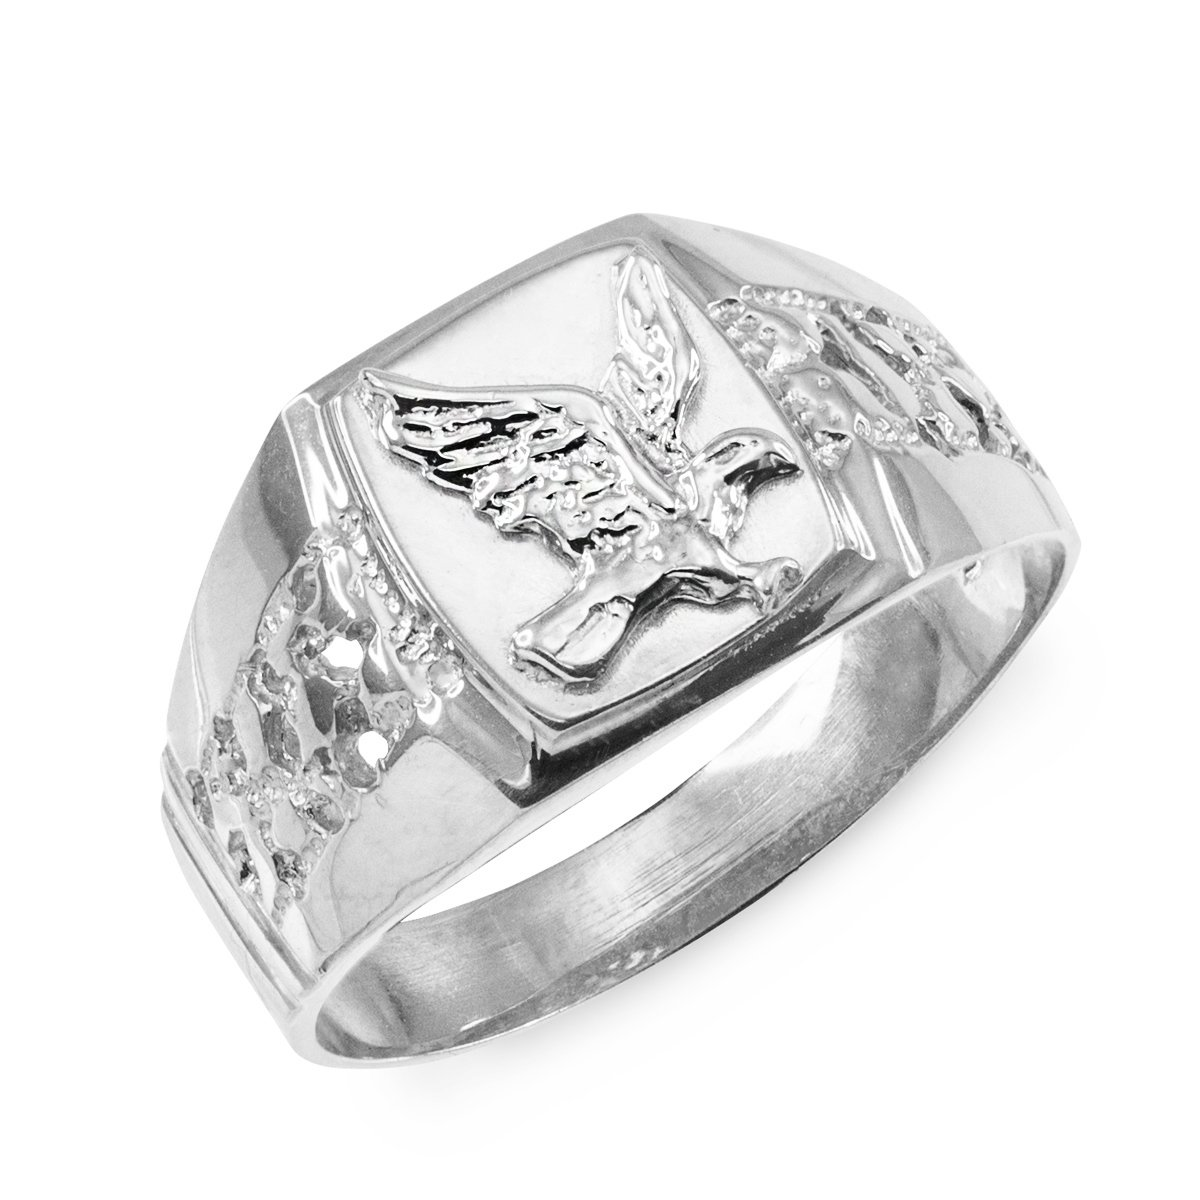 Men's Polished 14k White Gold Open Nugget Band American Eagle Ring (Size 9.5)